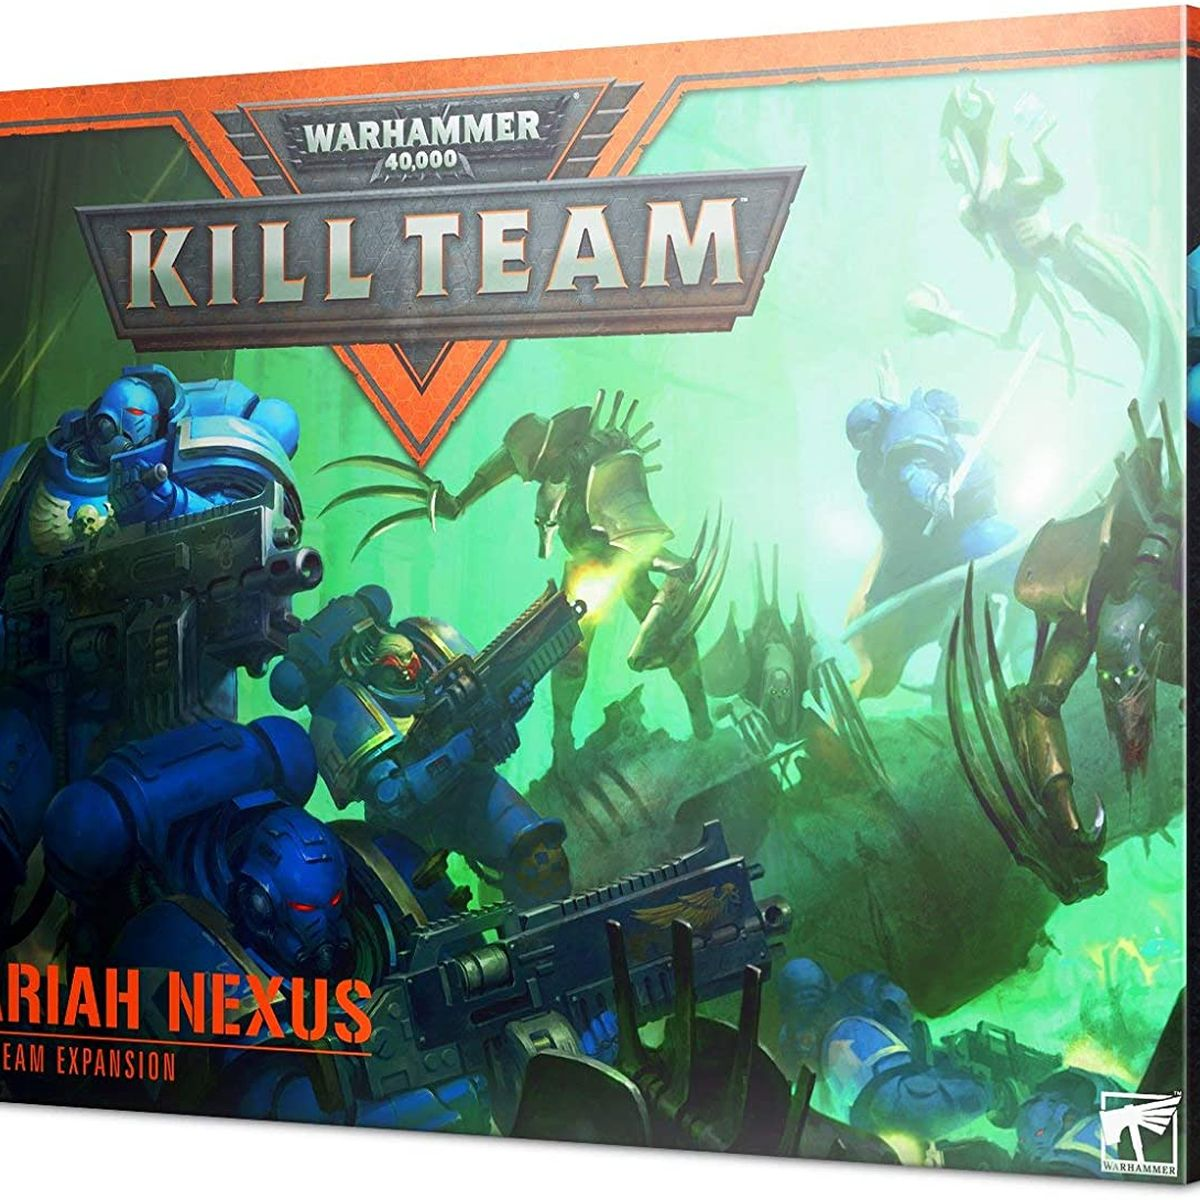 Warhammer 40K: Kill Team Pariah Nexus Review: Belles minis, mais le reste est inégal